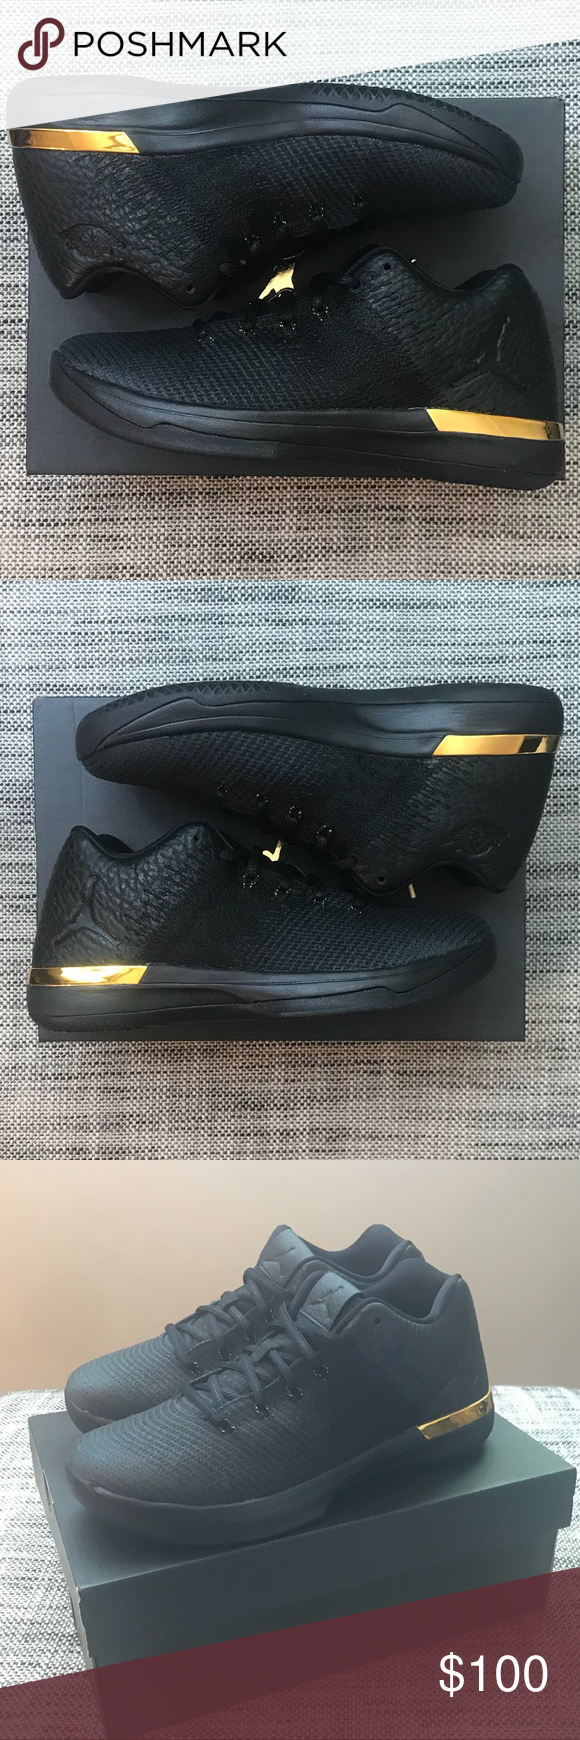 a05f62bae56497 Nike Air Jordan XXXI 31 Black Gold 897562-023 7Y Selling a Brand New in Box  pair of Nike Air Jordan XXXI (31) Low BG Shoes